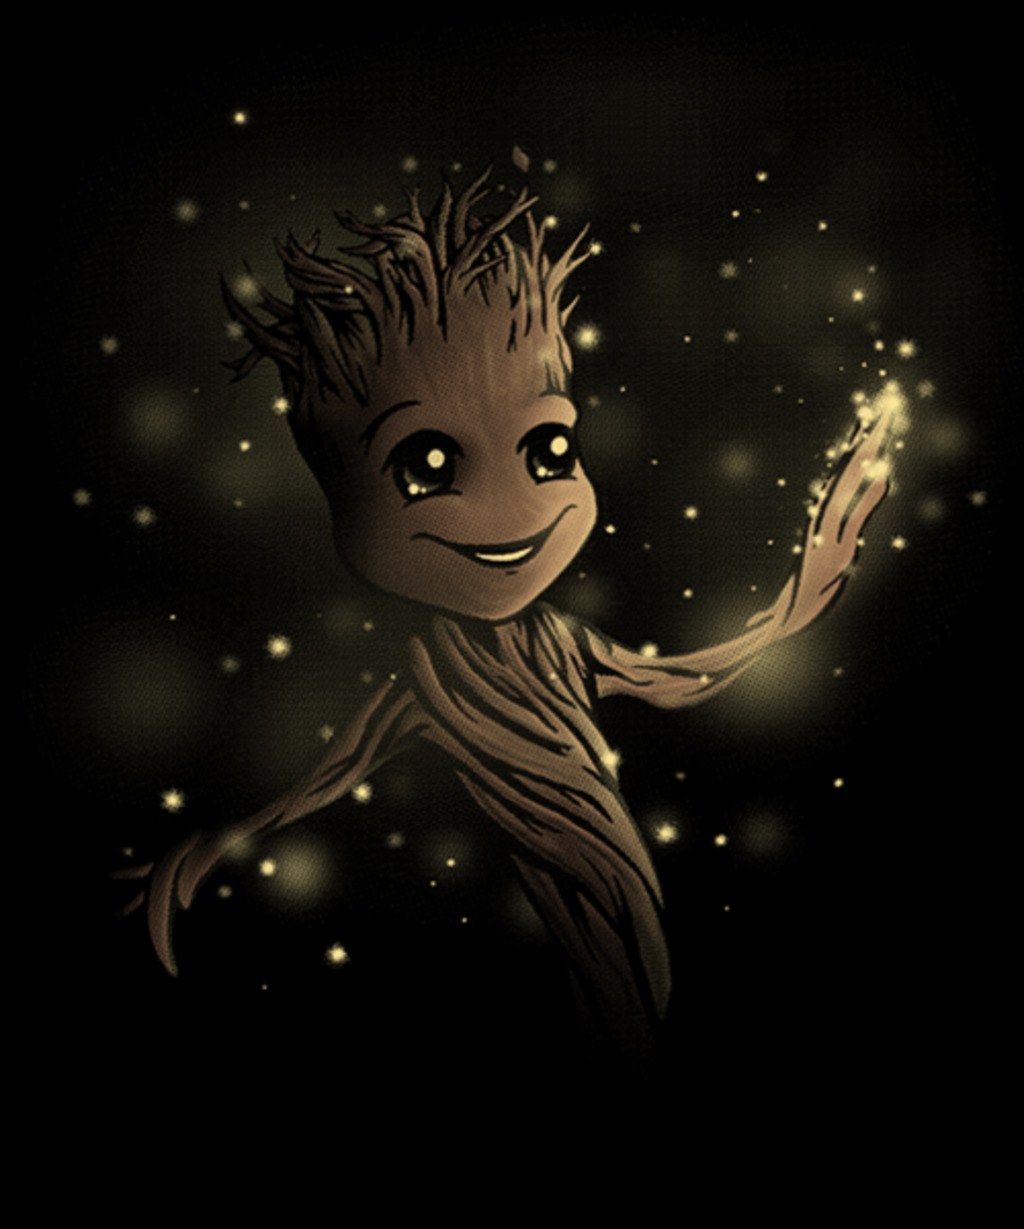 Qwertee: We are Groot